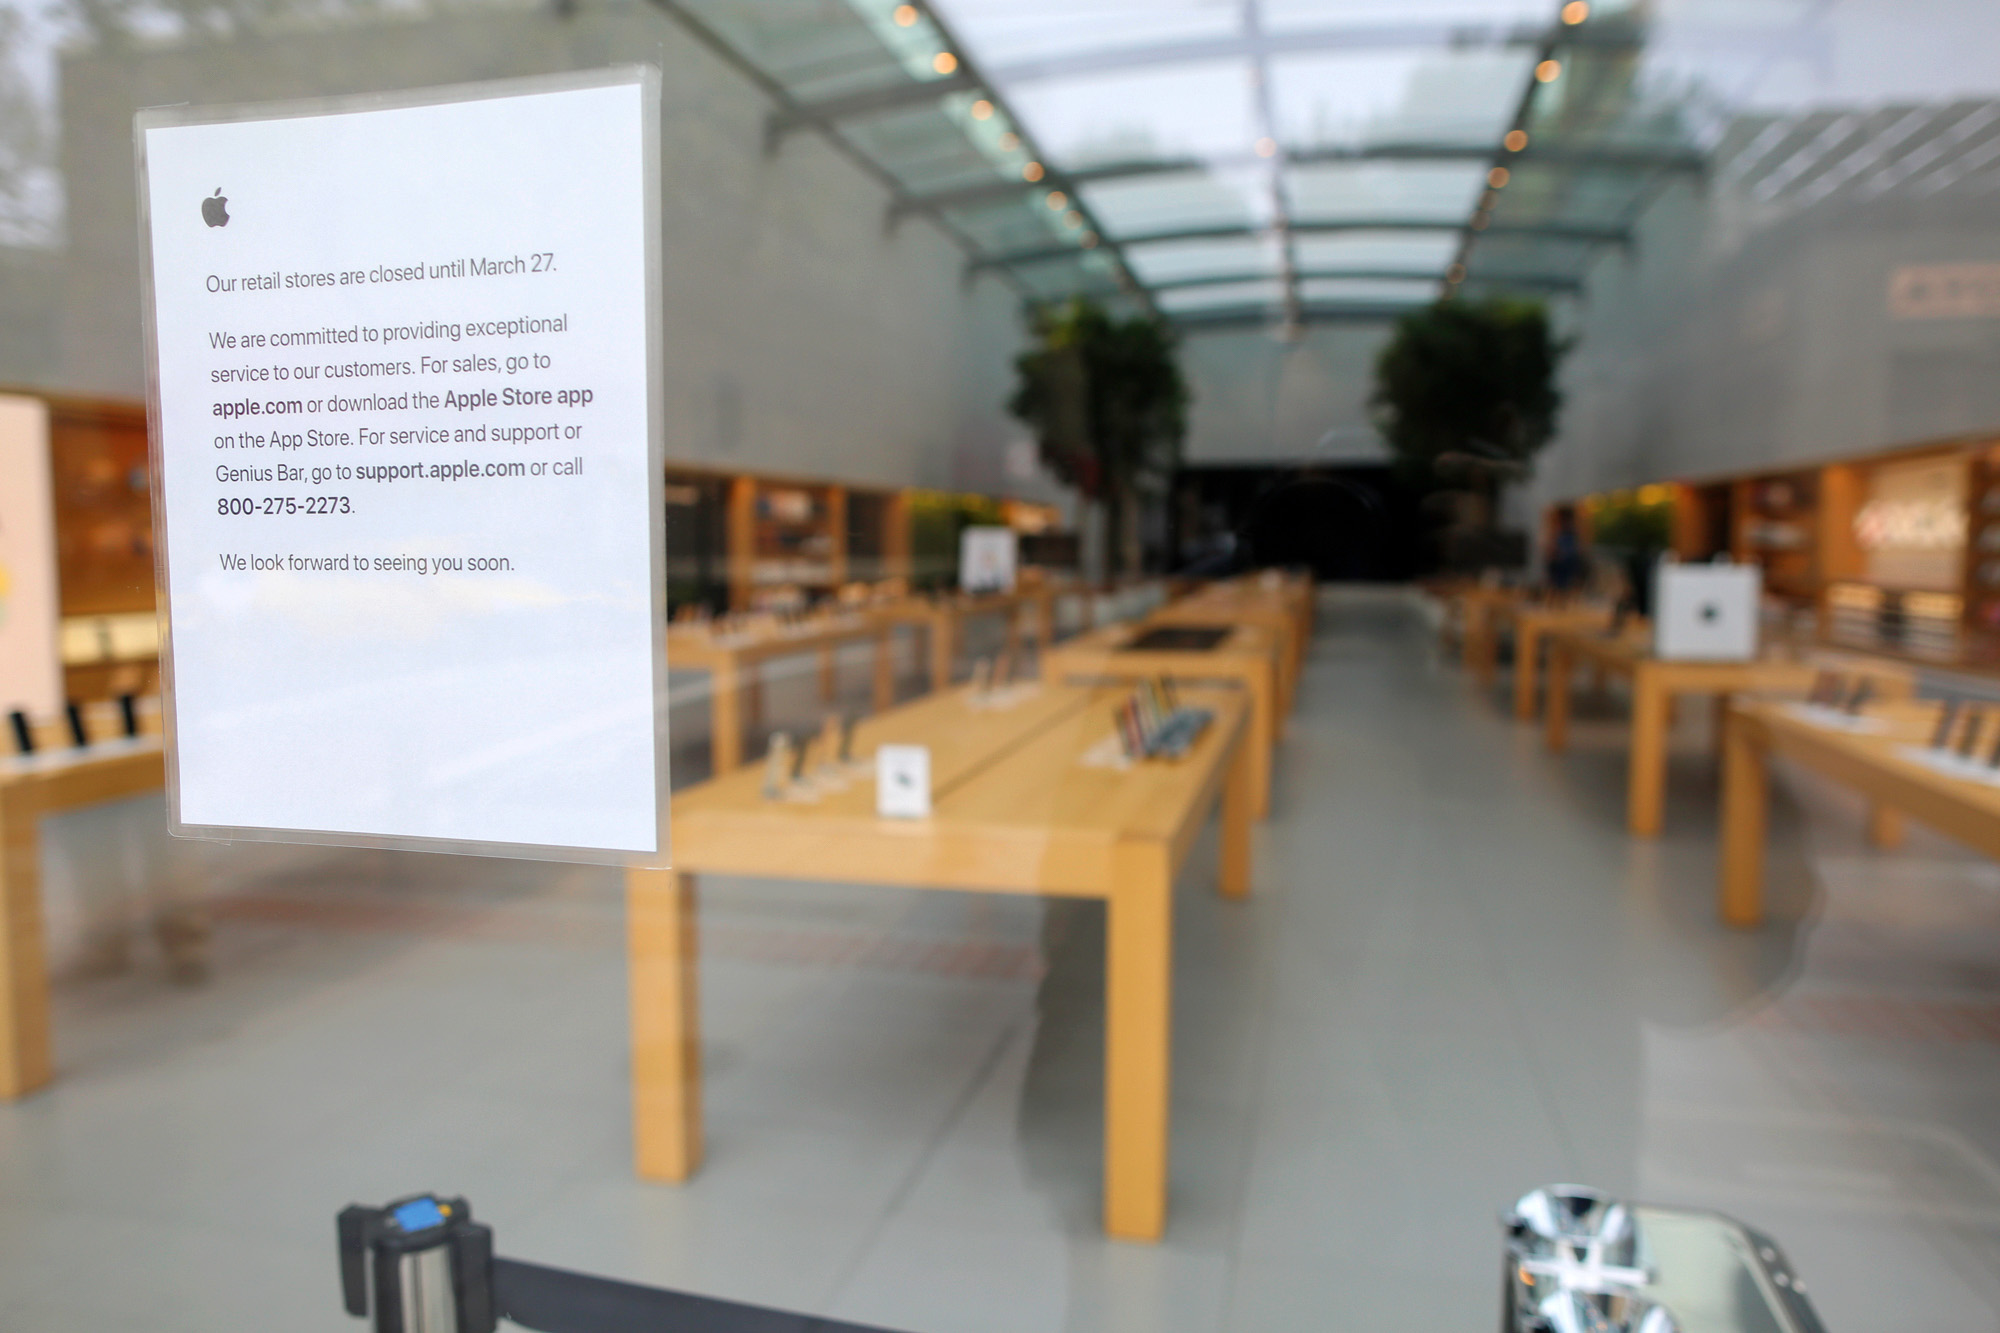 The normally bustling Apple store in Palo Alto has closed until March 27. Photo by Sammy Dallal.